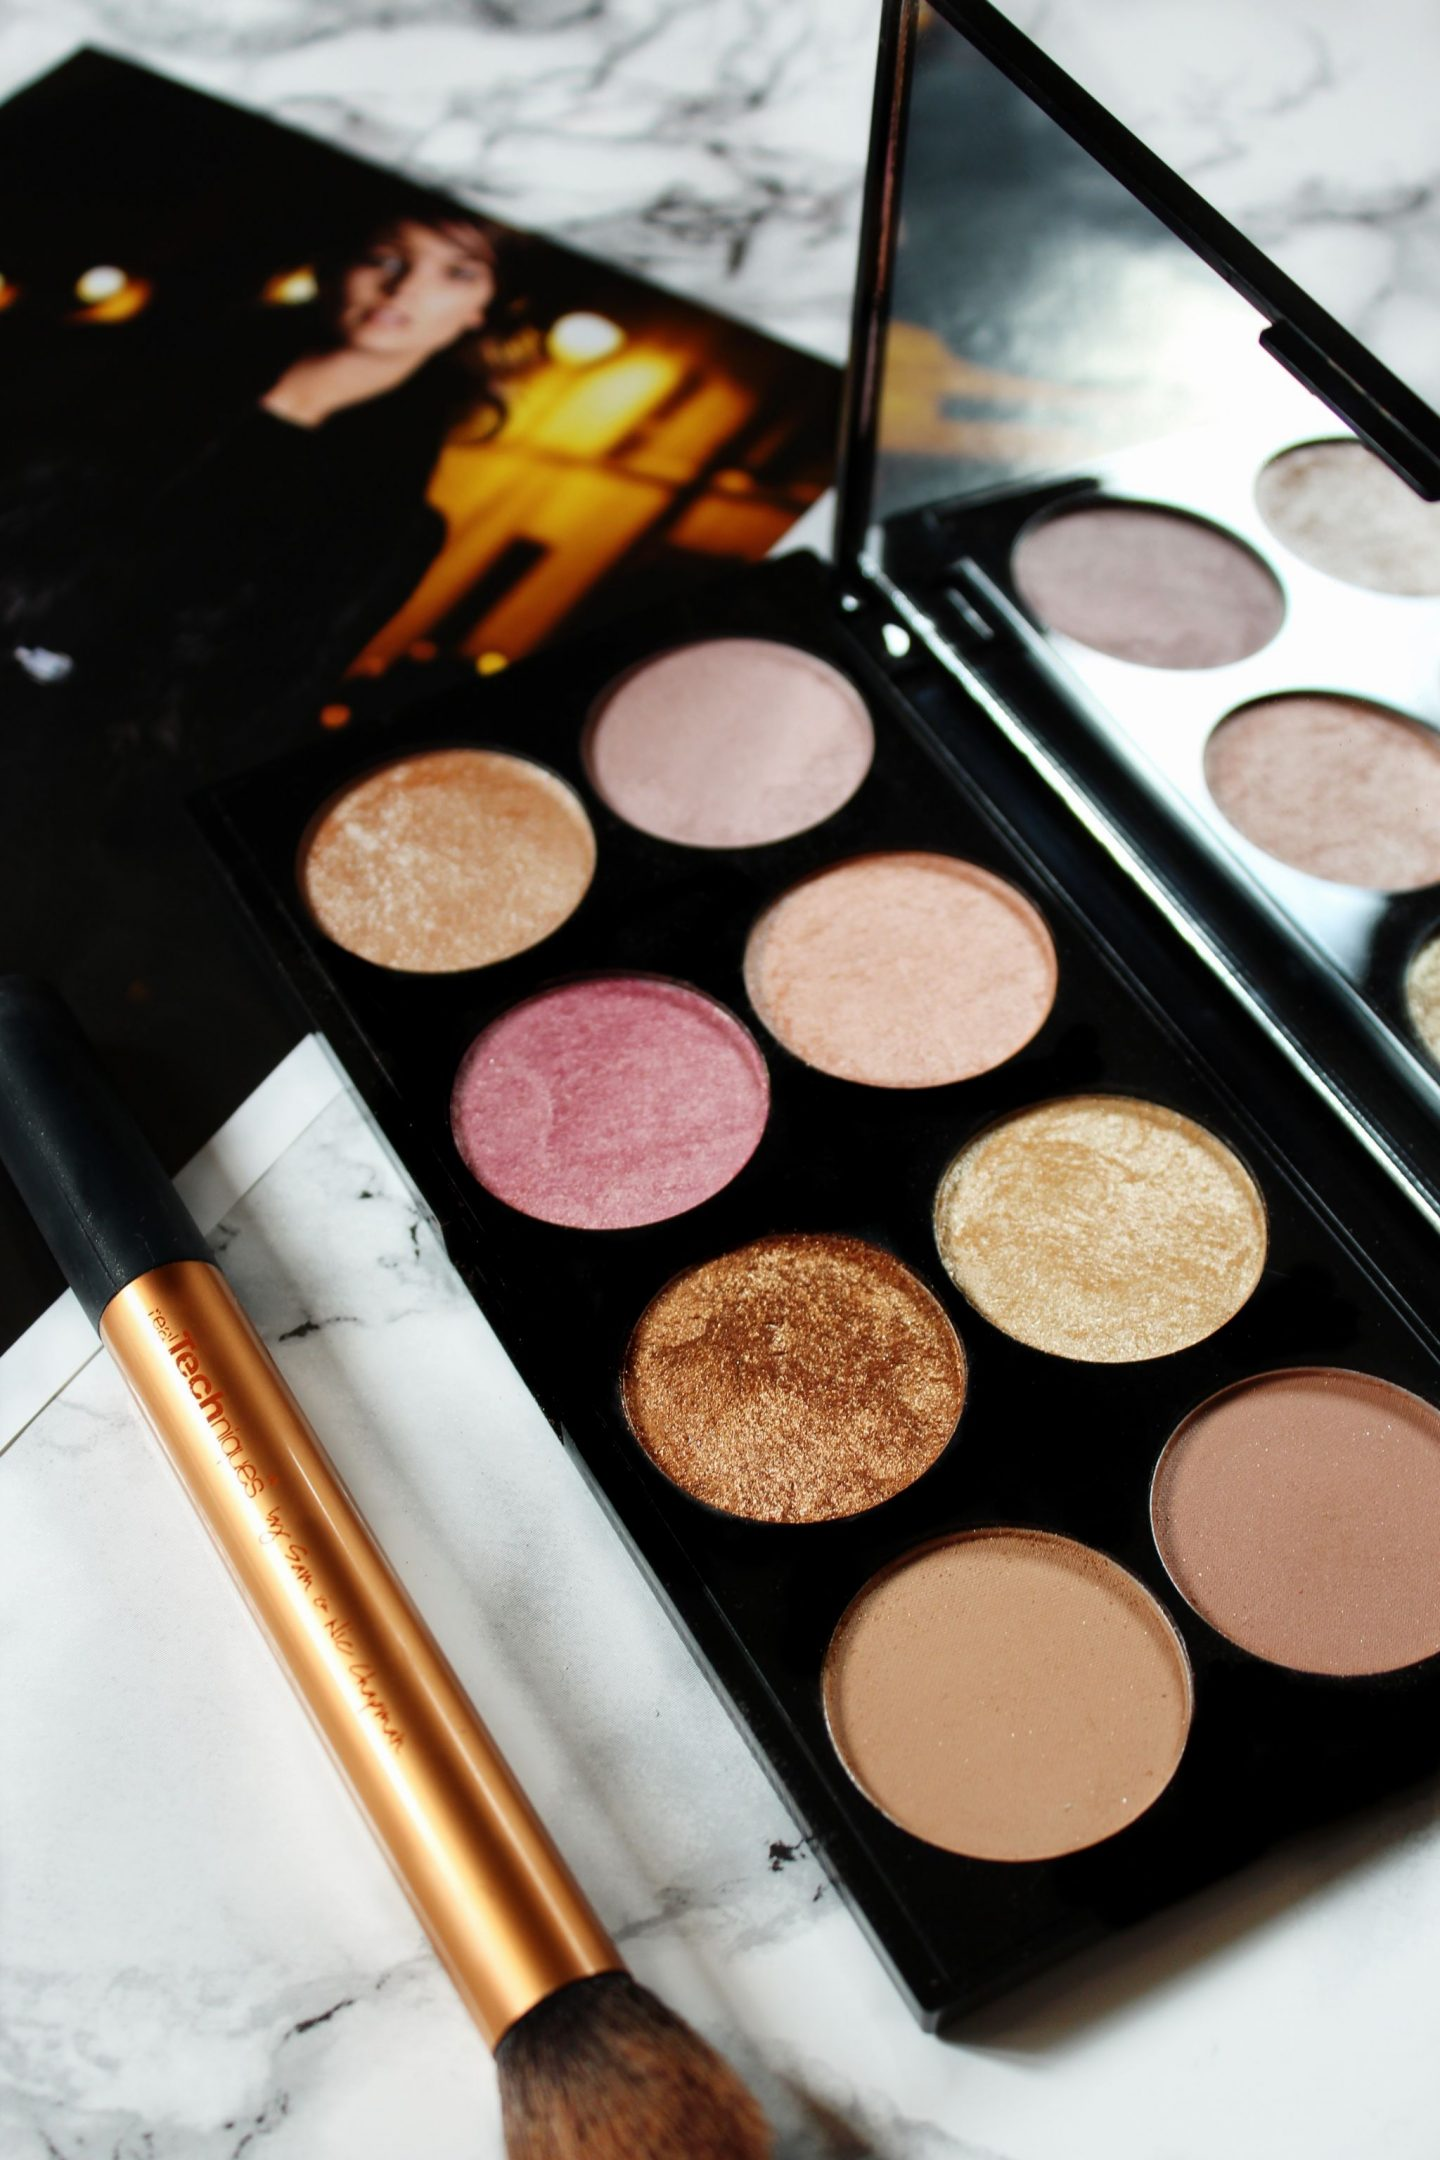 Makeup Revolution Ultra Palette Golden Sugar 2 Review - Miel and Mint blog